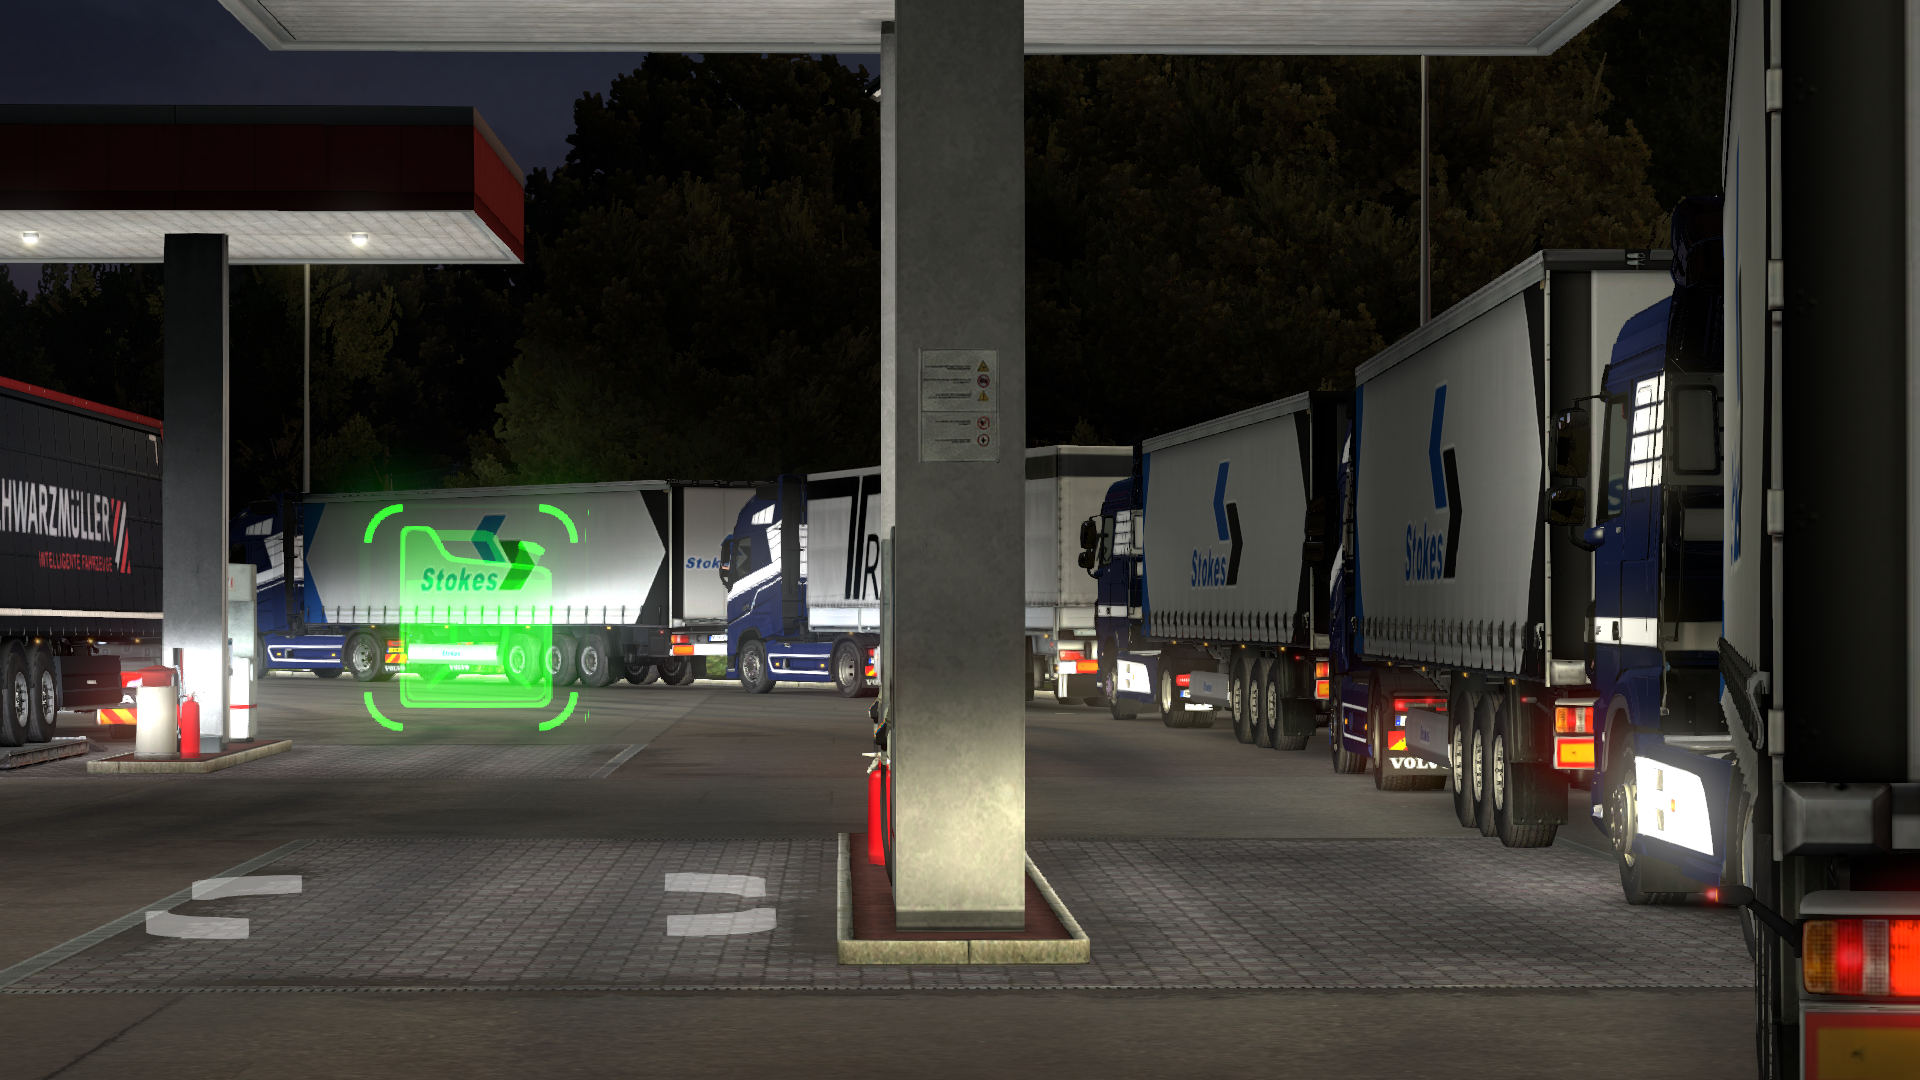 ets2_20180826_204523_00.png